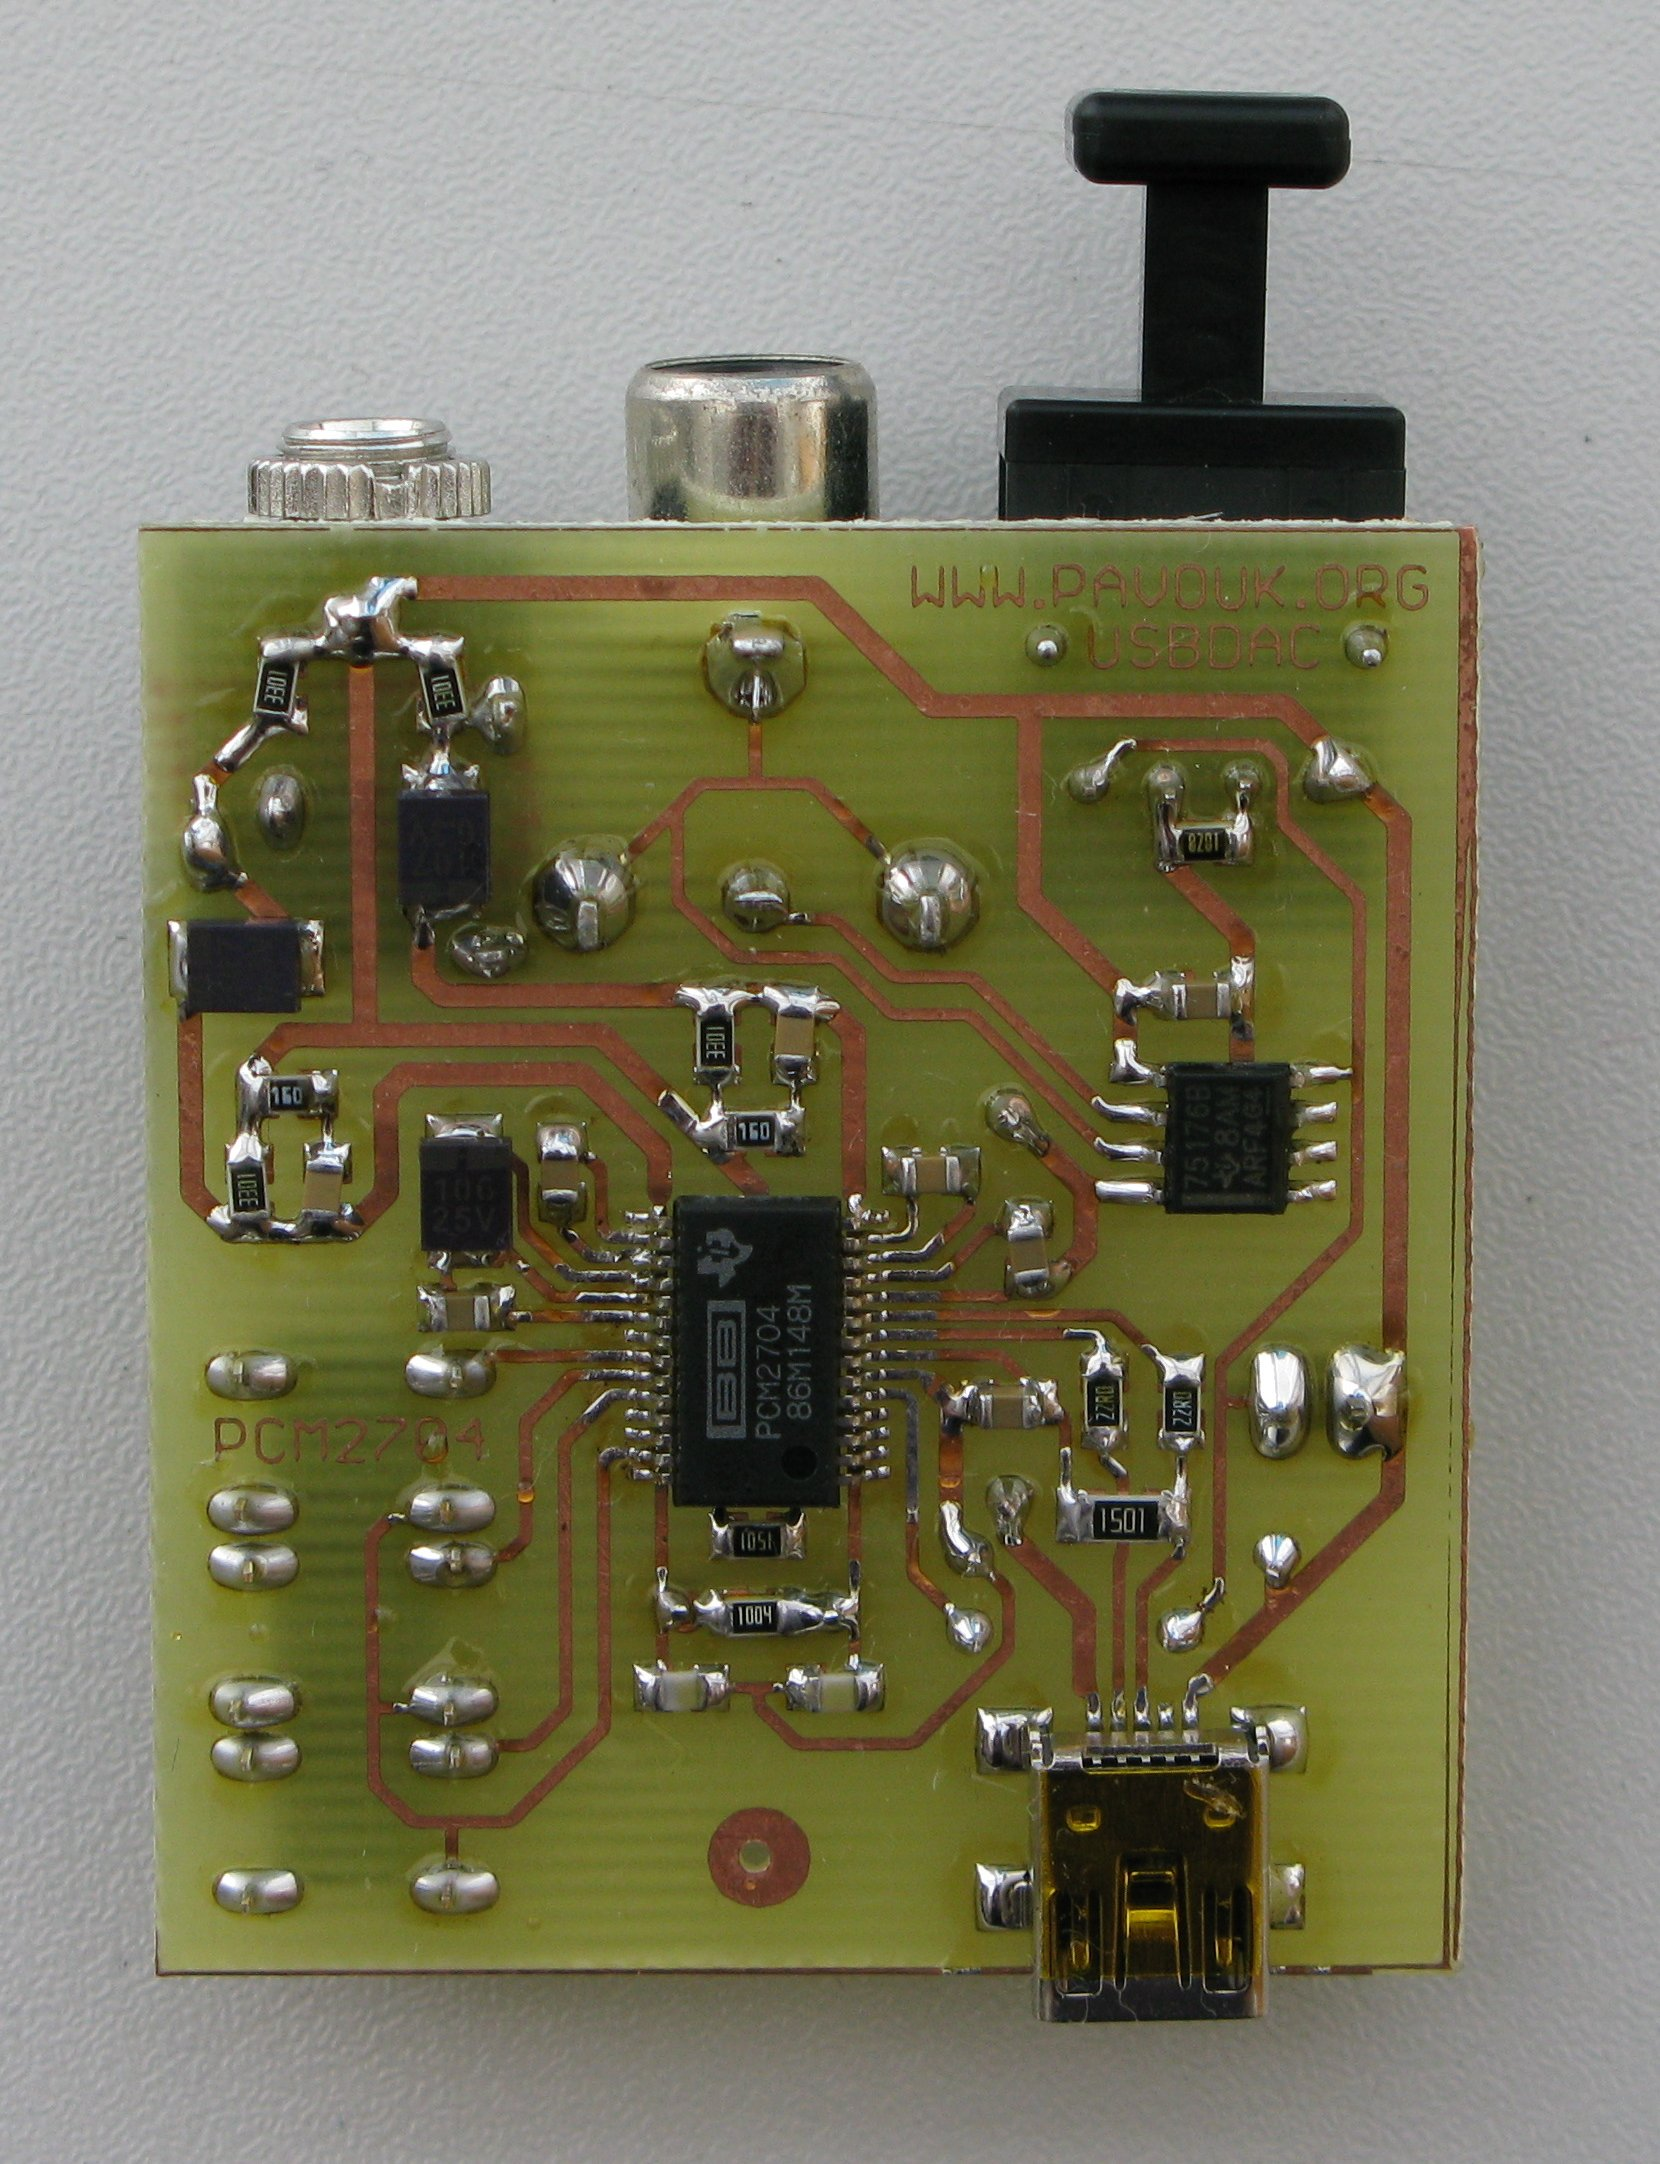 Usb Audio Dac With Pcm2704 Schematic Symbols Where To Find Diyaudio Photos